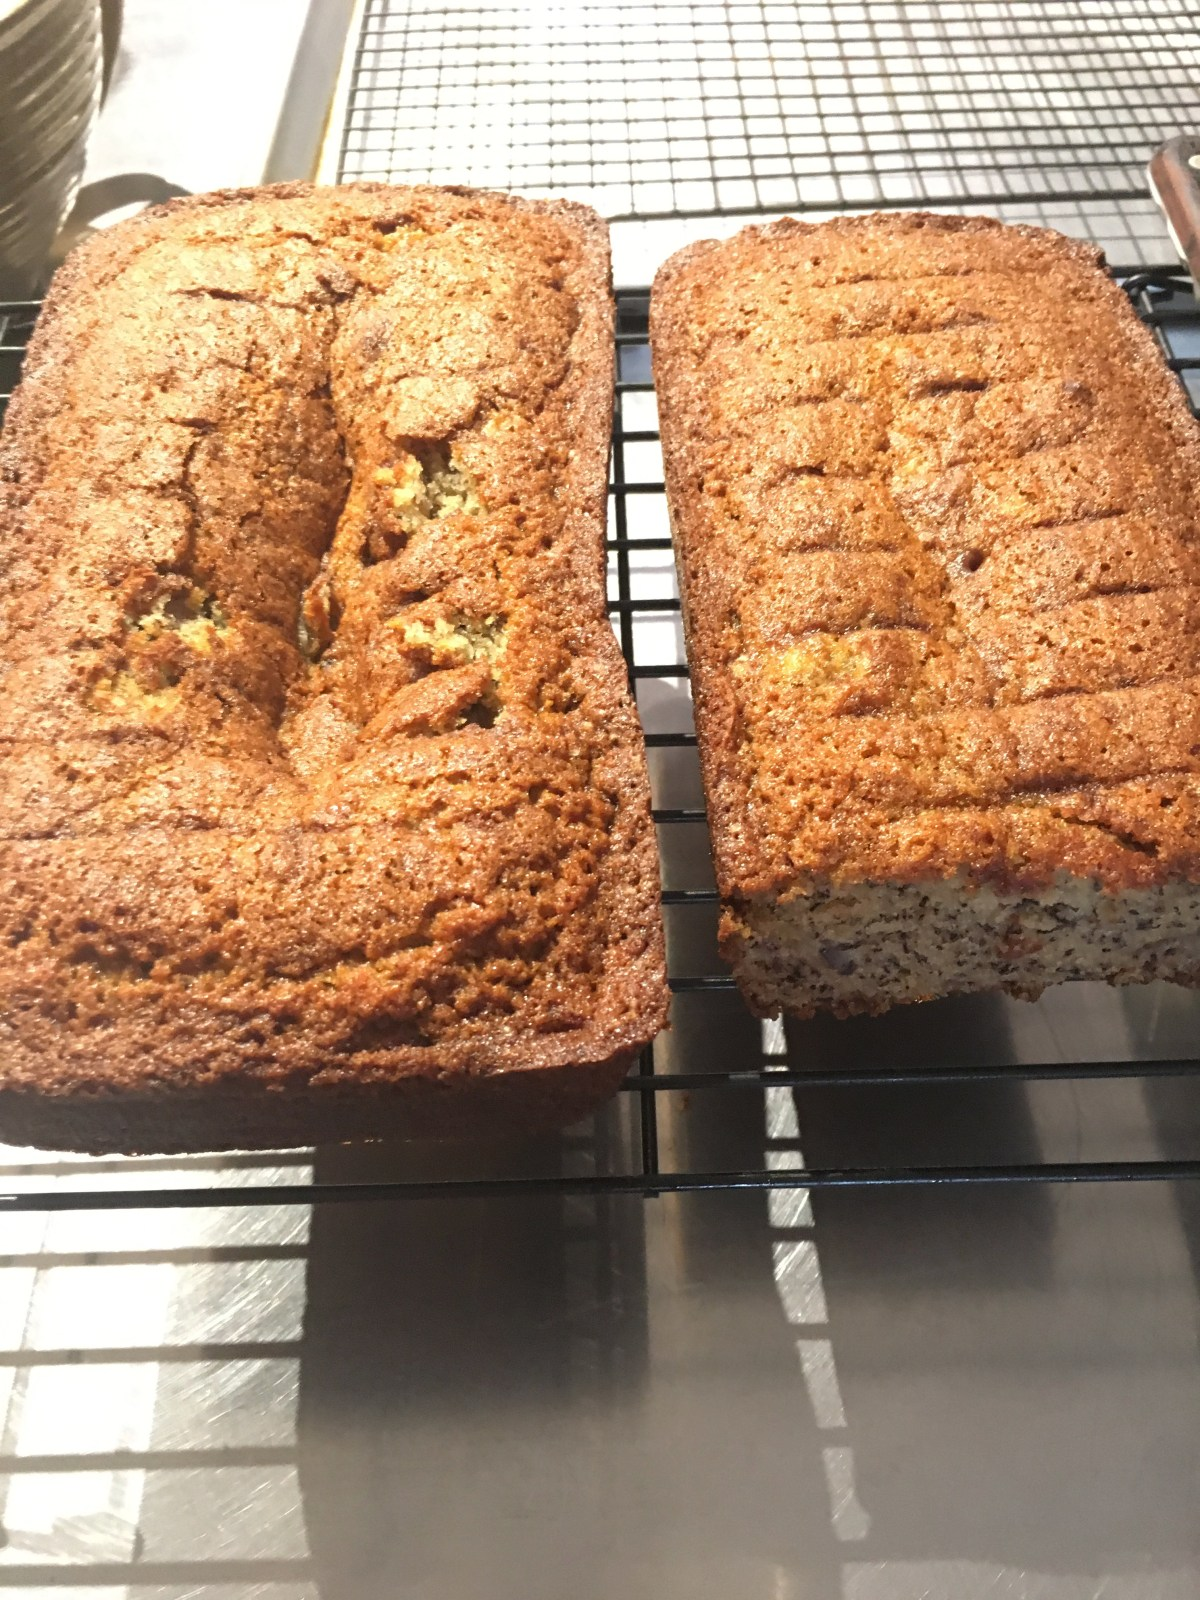 Sundays and Banana Bread